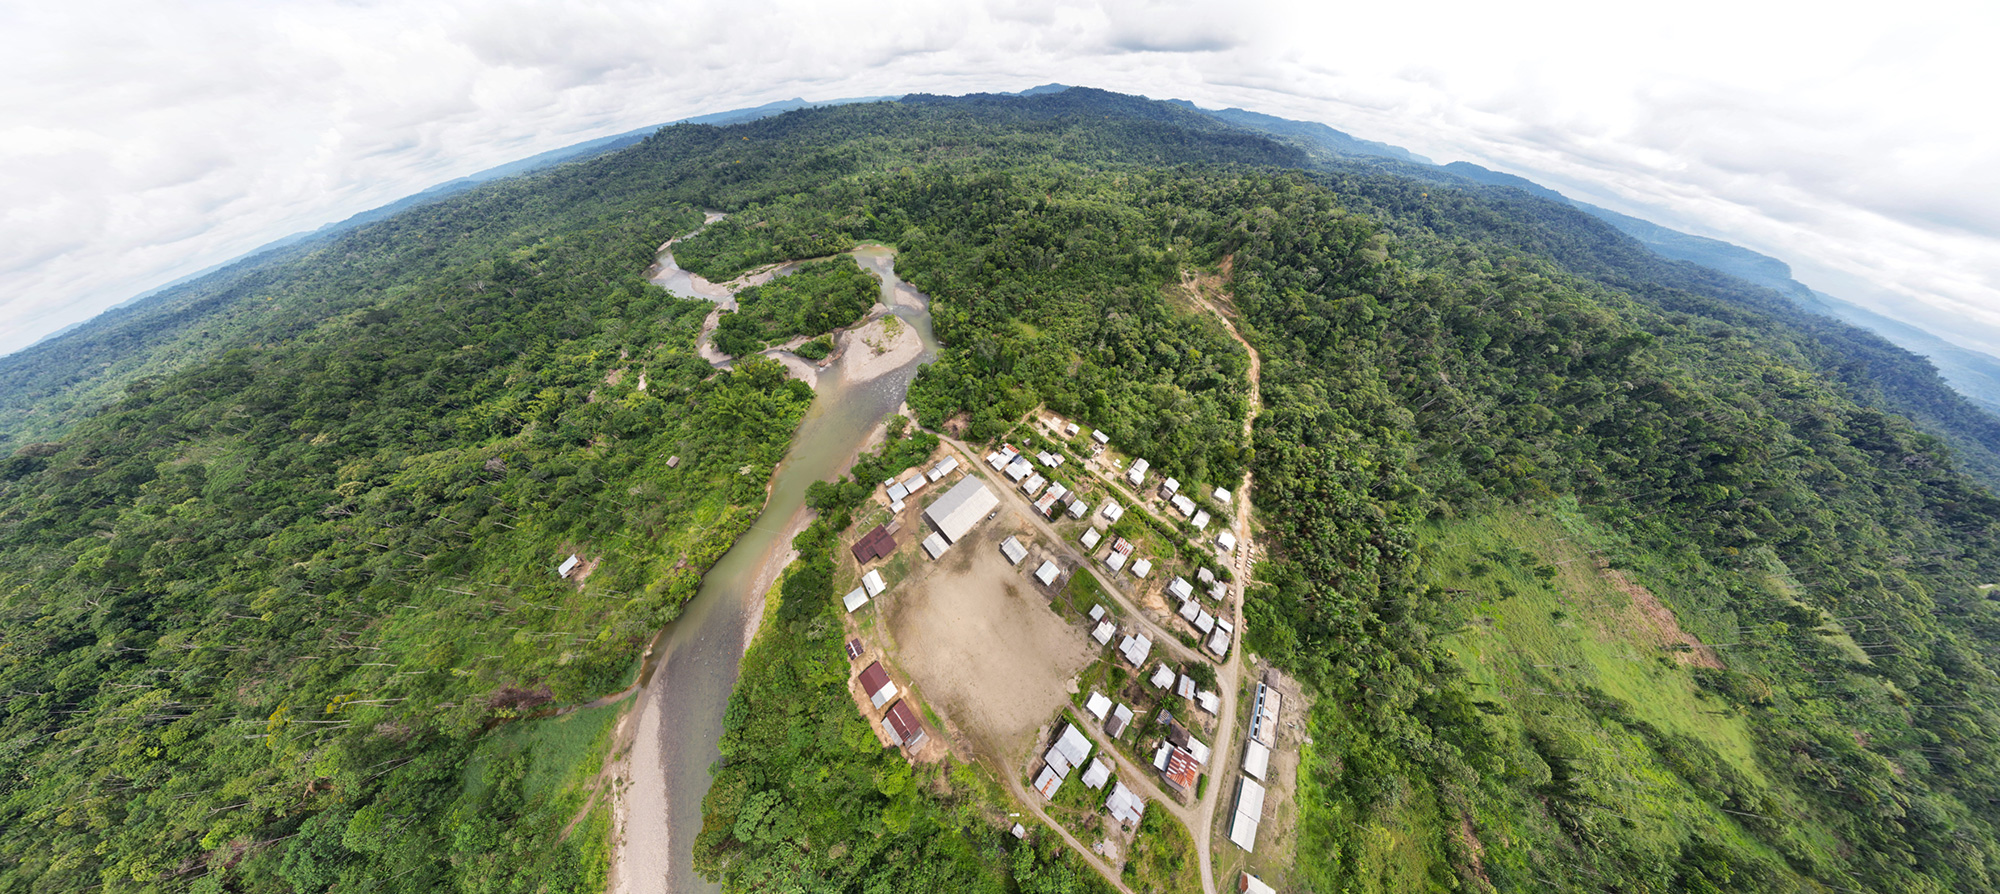 Extract of an aerial 360° panorama, Ecuador, RUNA Foundation. Click the image to see the full panorama.